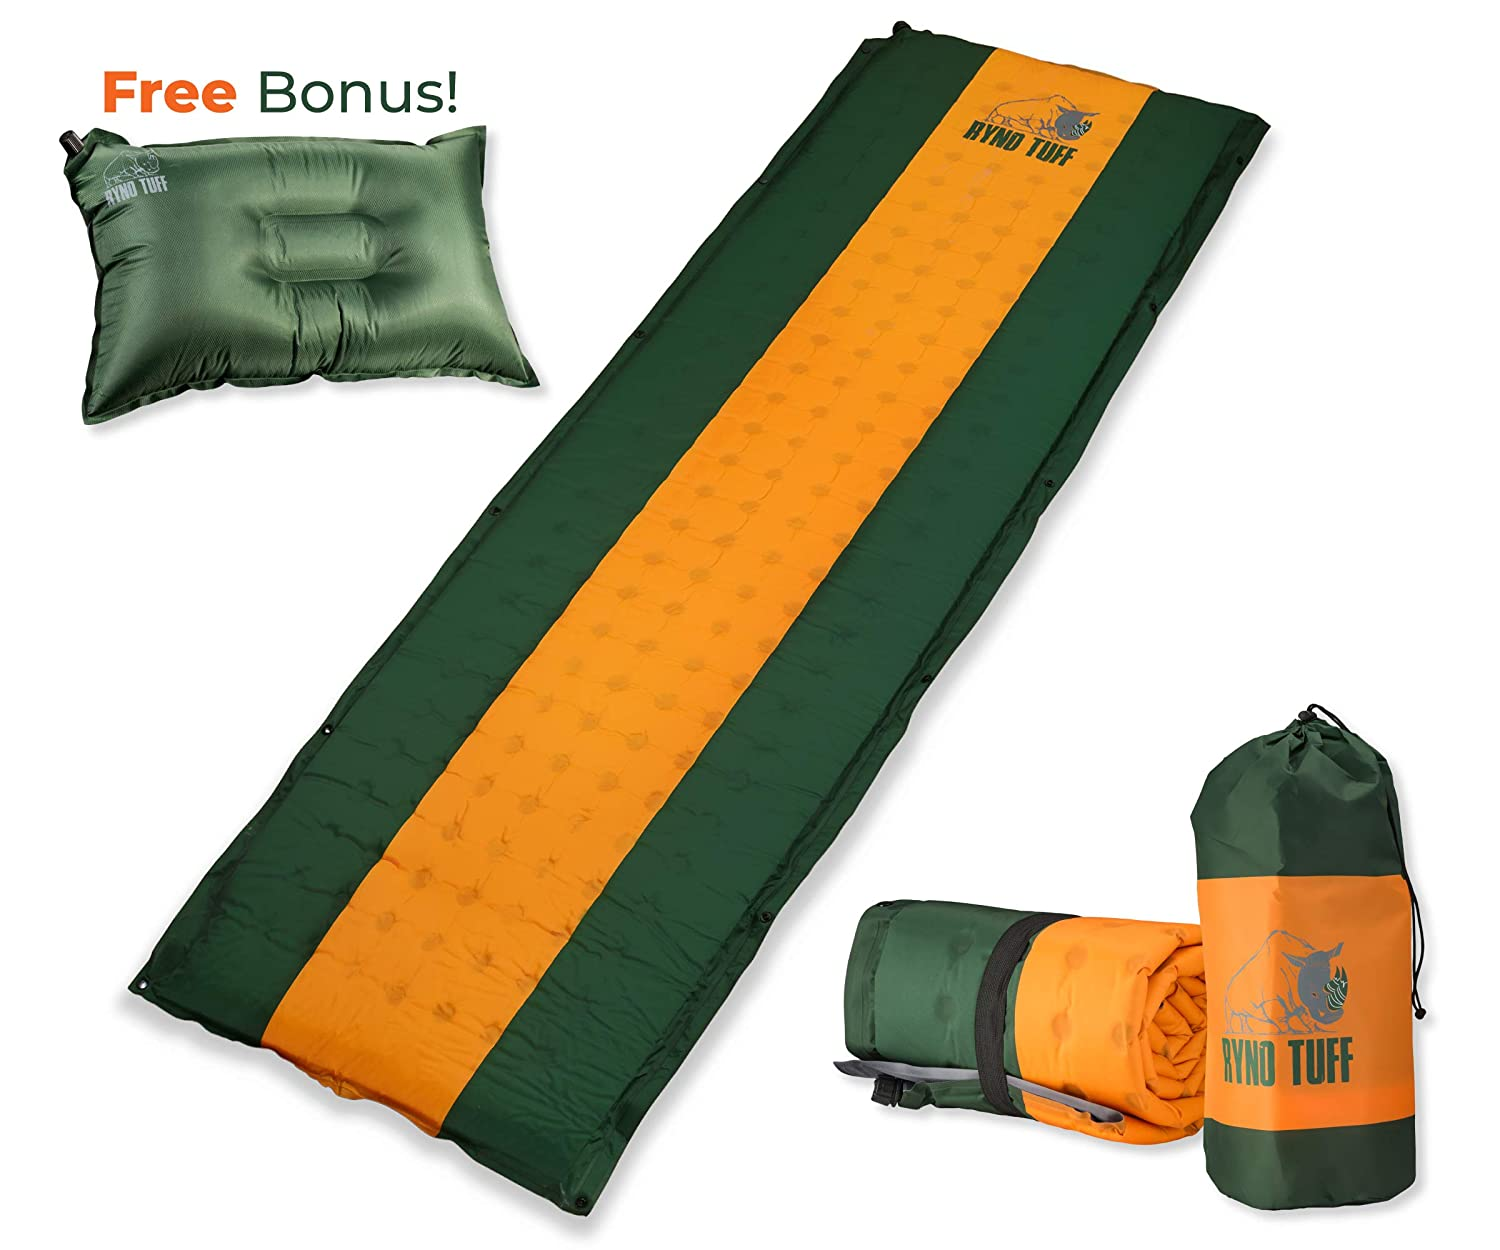 Ryno Tuff Sleeping Pad Set, Self Inflating Sleeping Pad with Free Bonus Camping Pillow